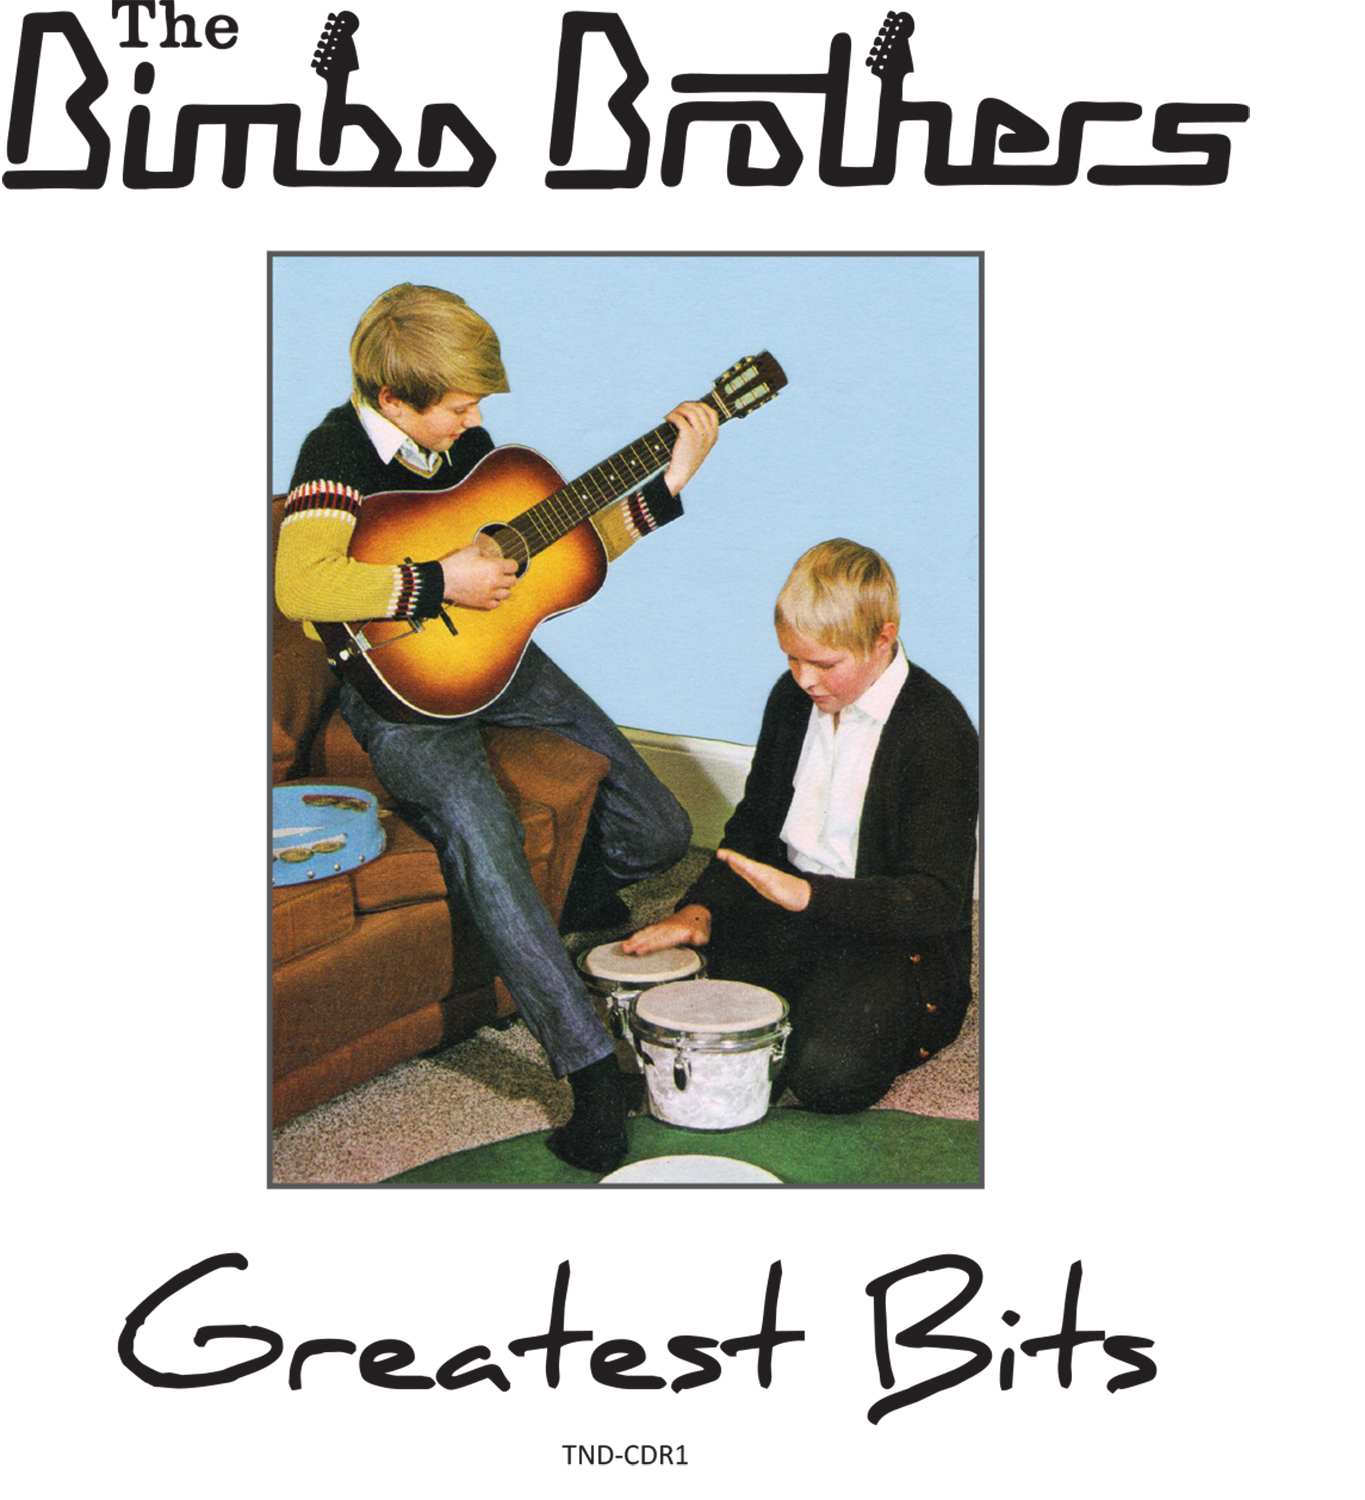 the-bimbo-brothers-cd1.jpg